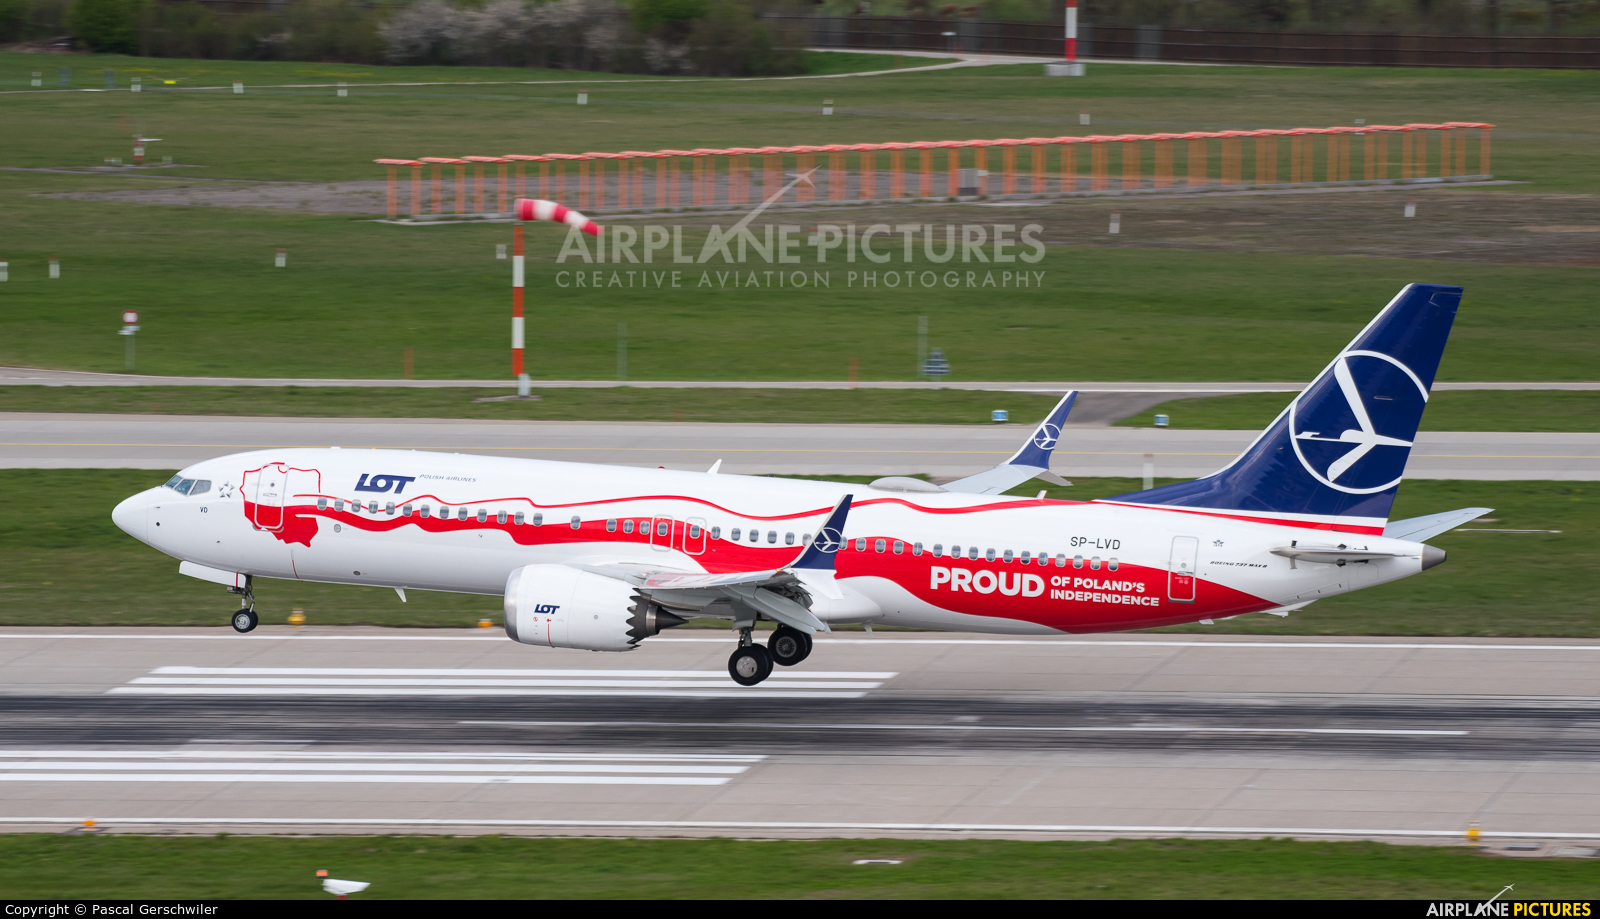 LOT - Polish Airlines SP-LVD aircraft at Zurich